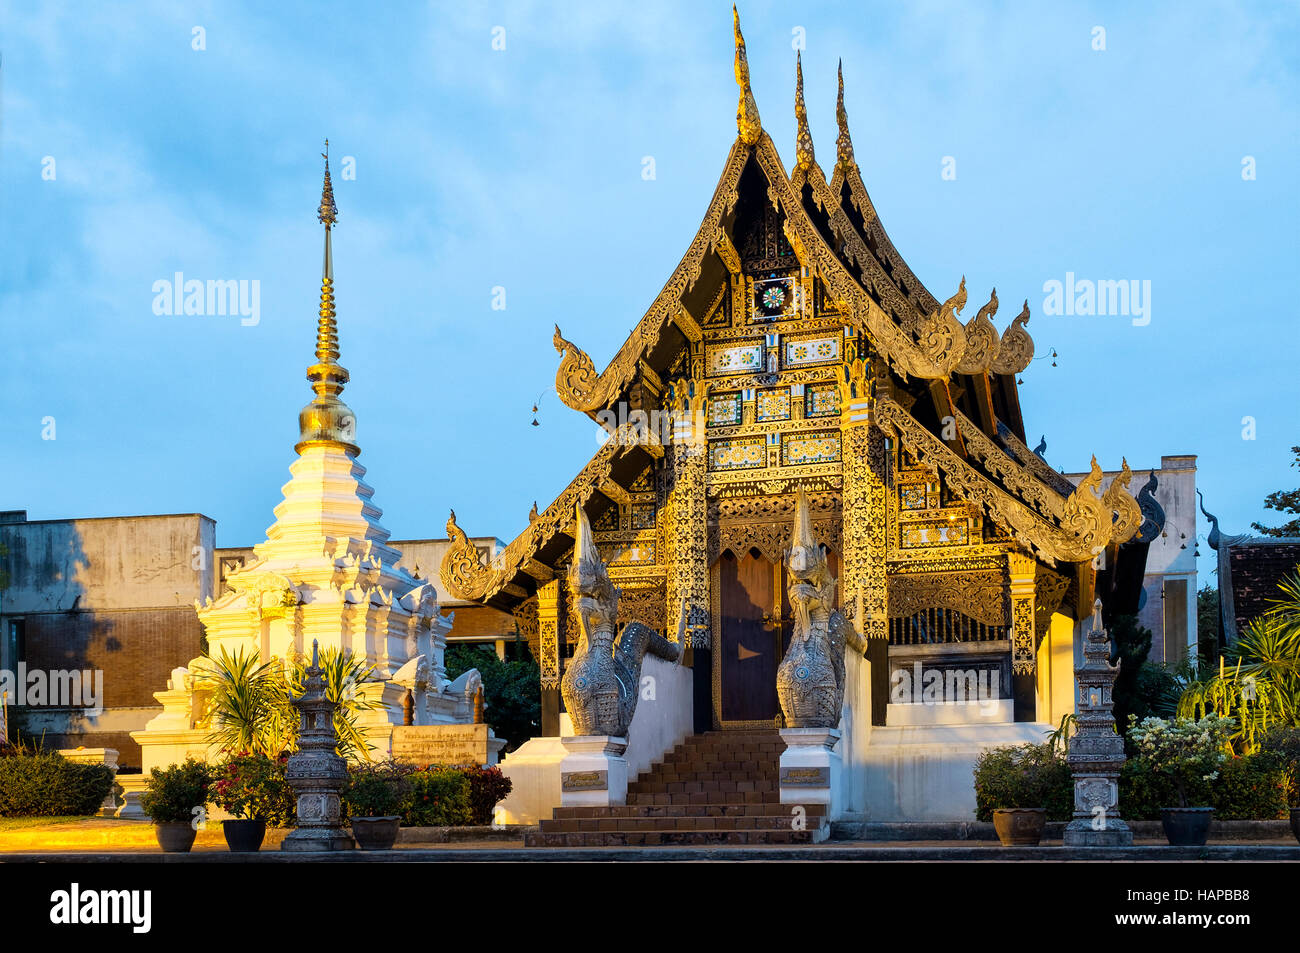 Bucha Sao Inthakin inside the Wat Chedi Luang temple grounds, Chiang Mai, Thailand - Stock Image